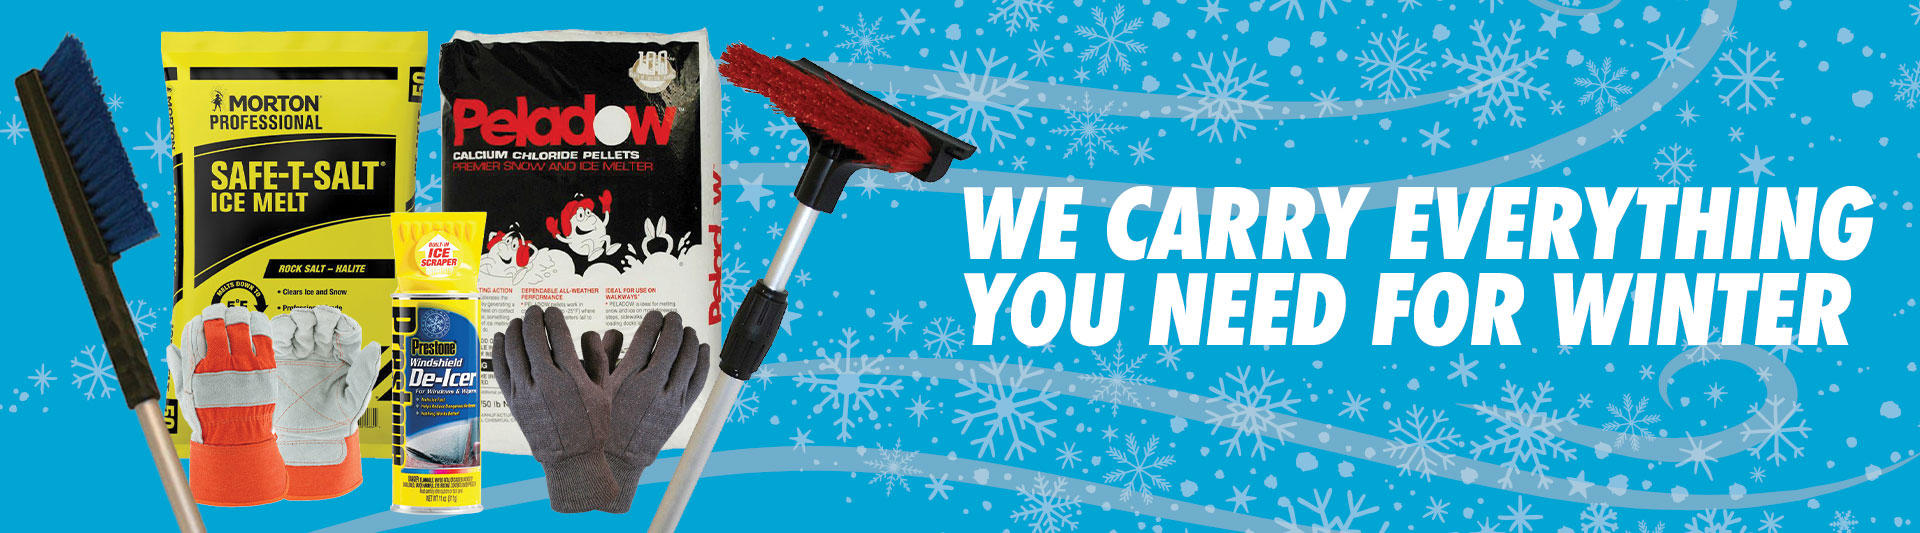 We carry everything you need for winter